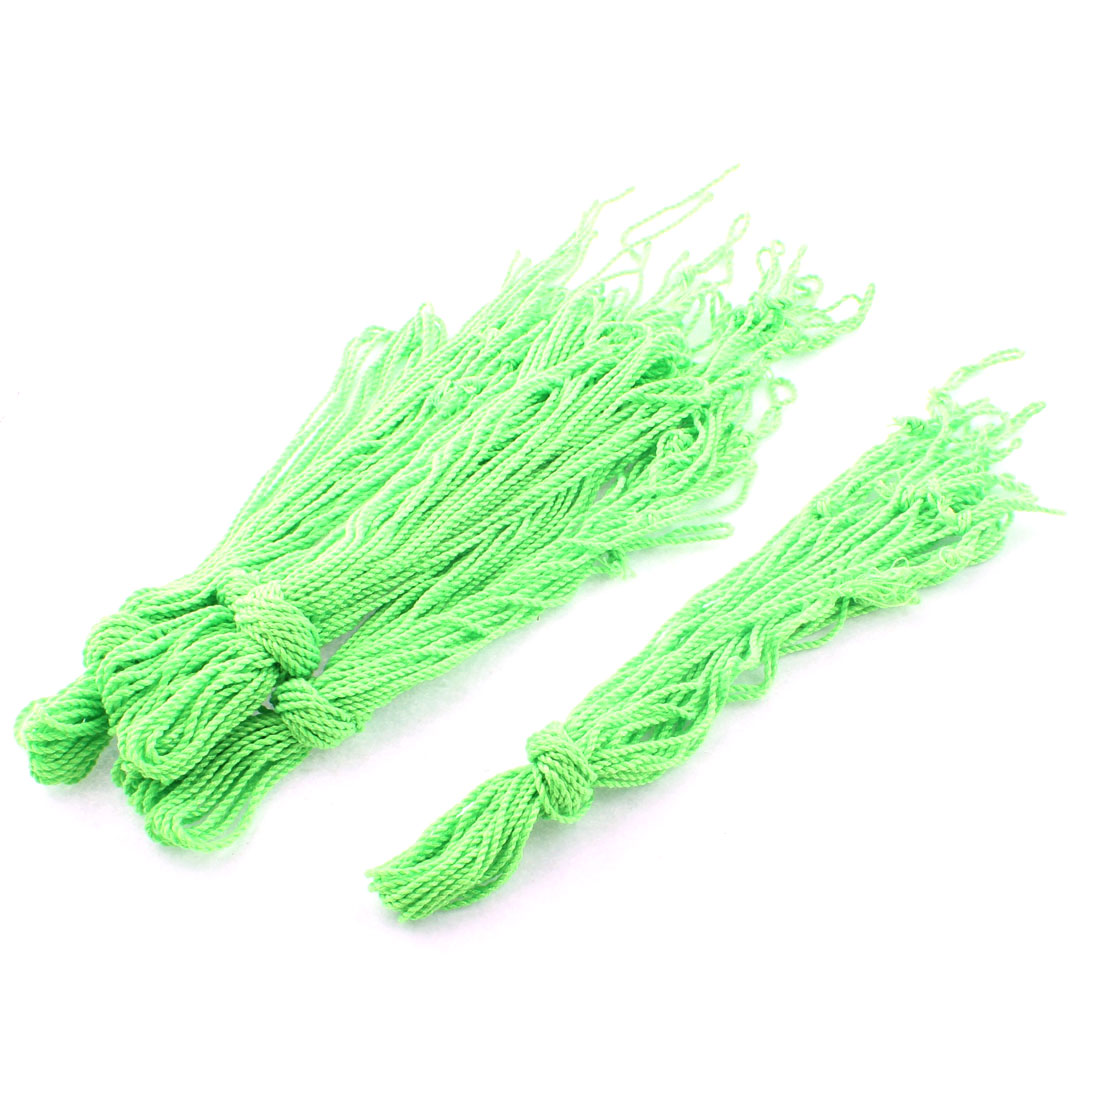 50 Pcs Nylon Bearing Cord Rope String 3.5Ft Long Green for YoYo Ball